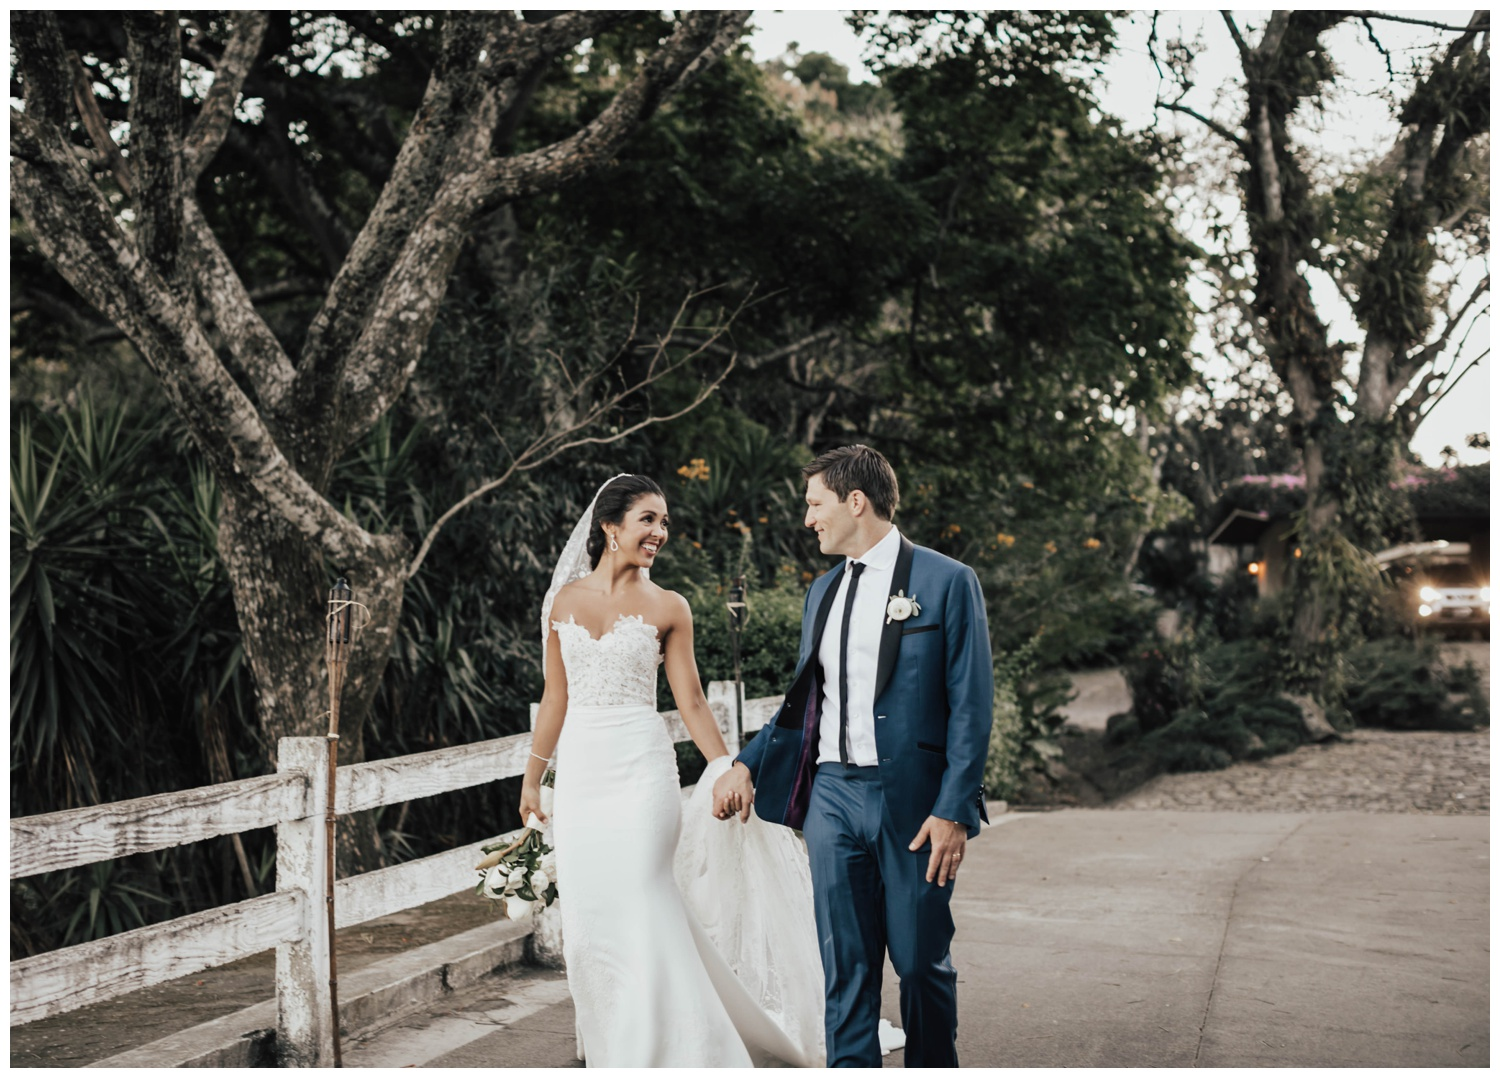 adriana_rivera_miranda_weddings_el_salvador_46.jpg